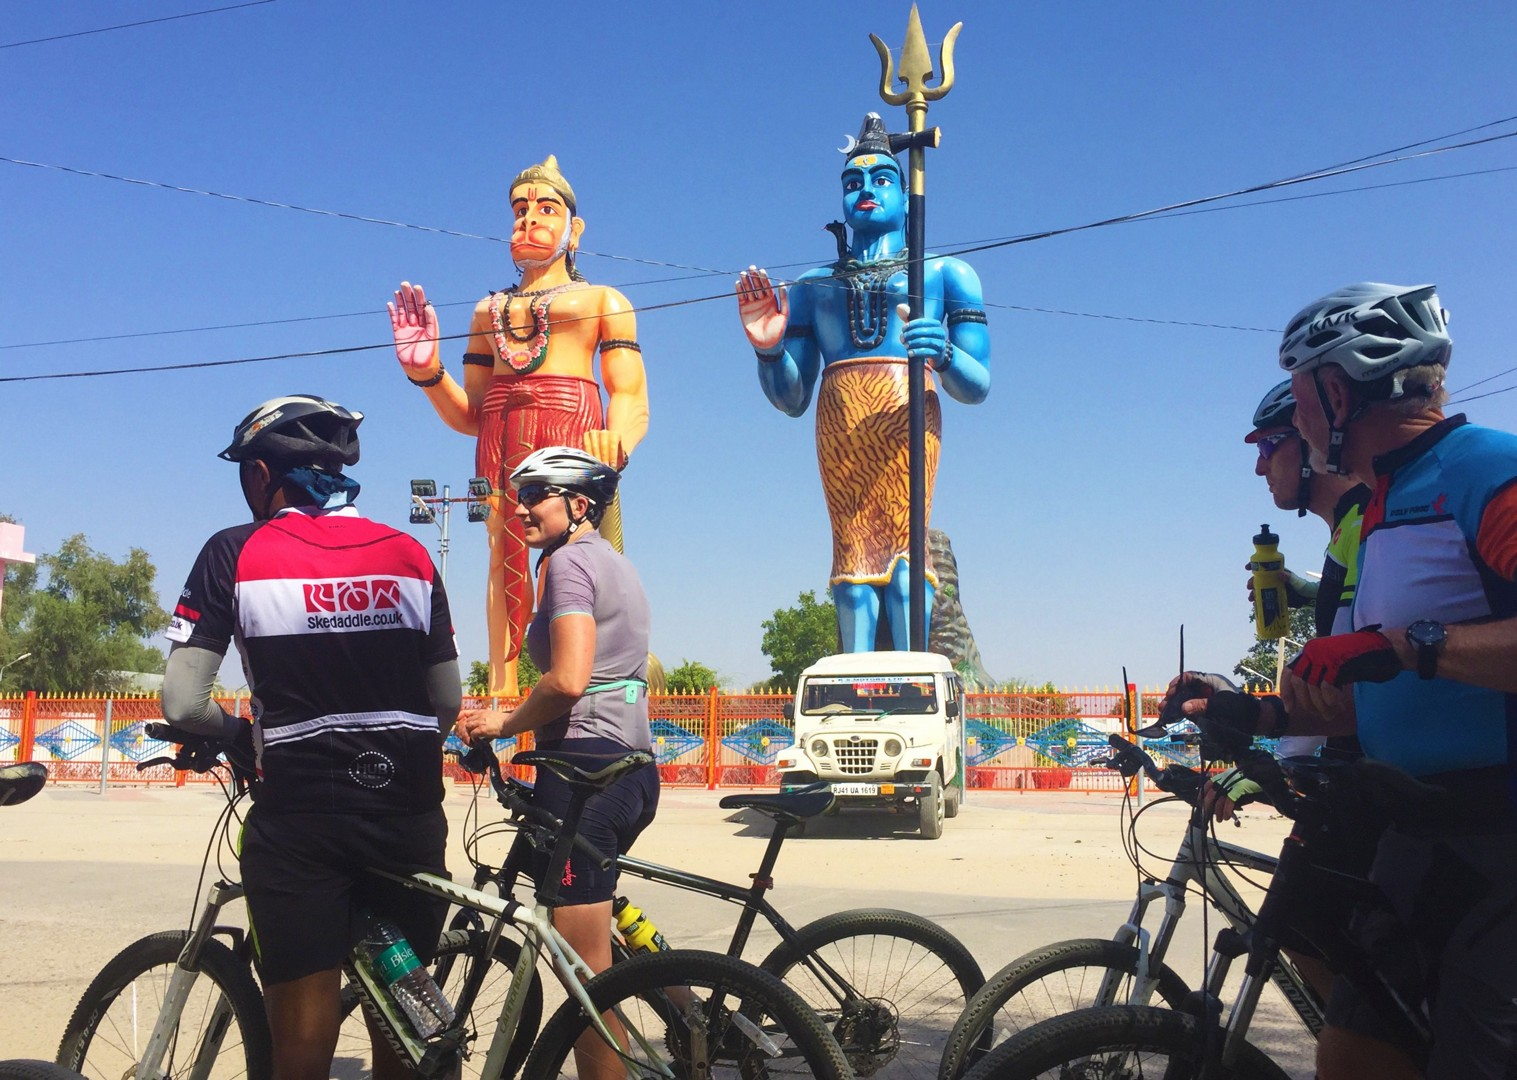 ancient-statue-cycling-adventure-rajasthan.jpg - India - Palaces and Lakes of Rajasthan - Cycling Adventures